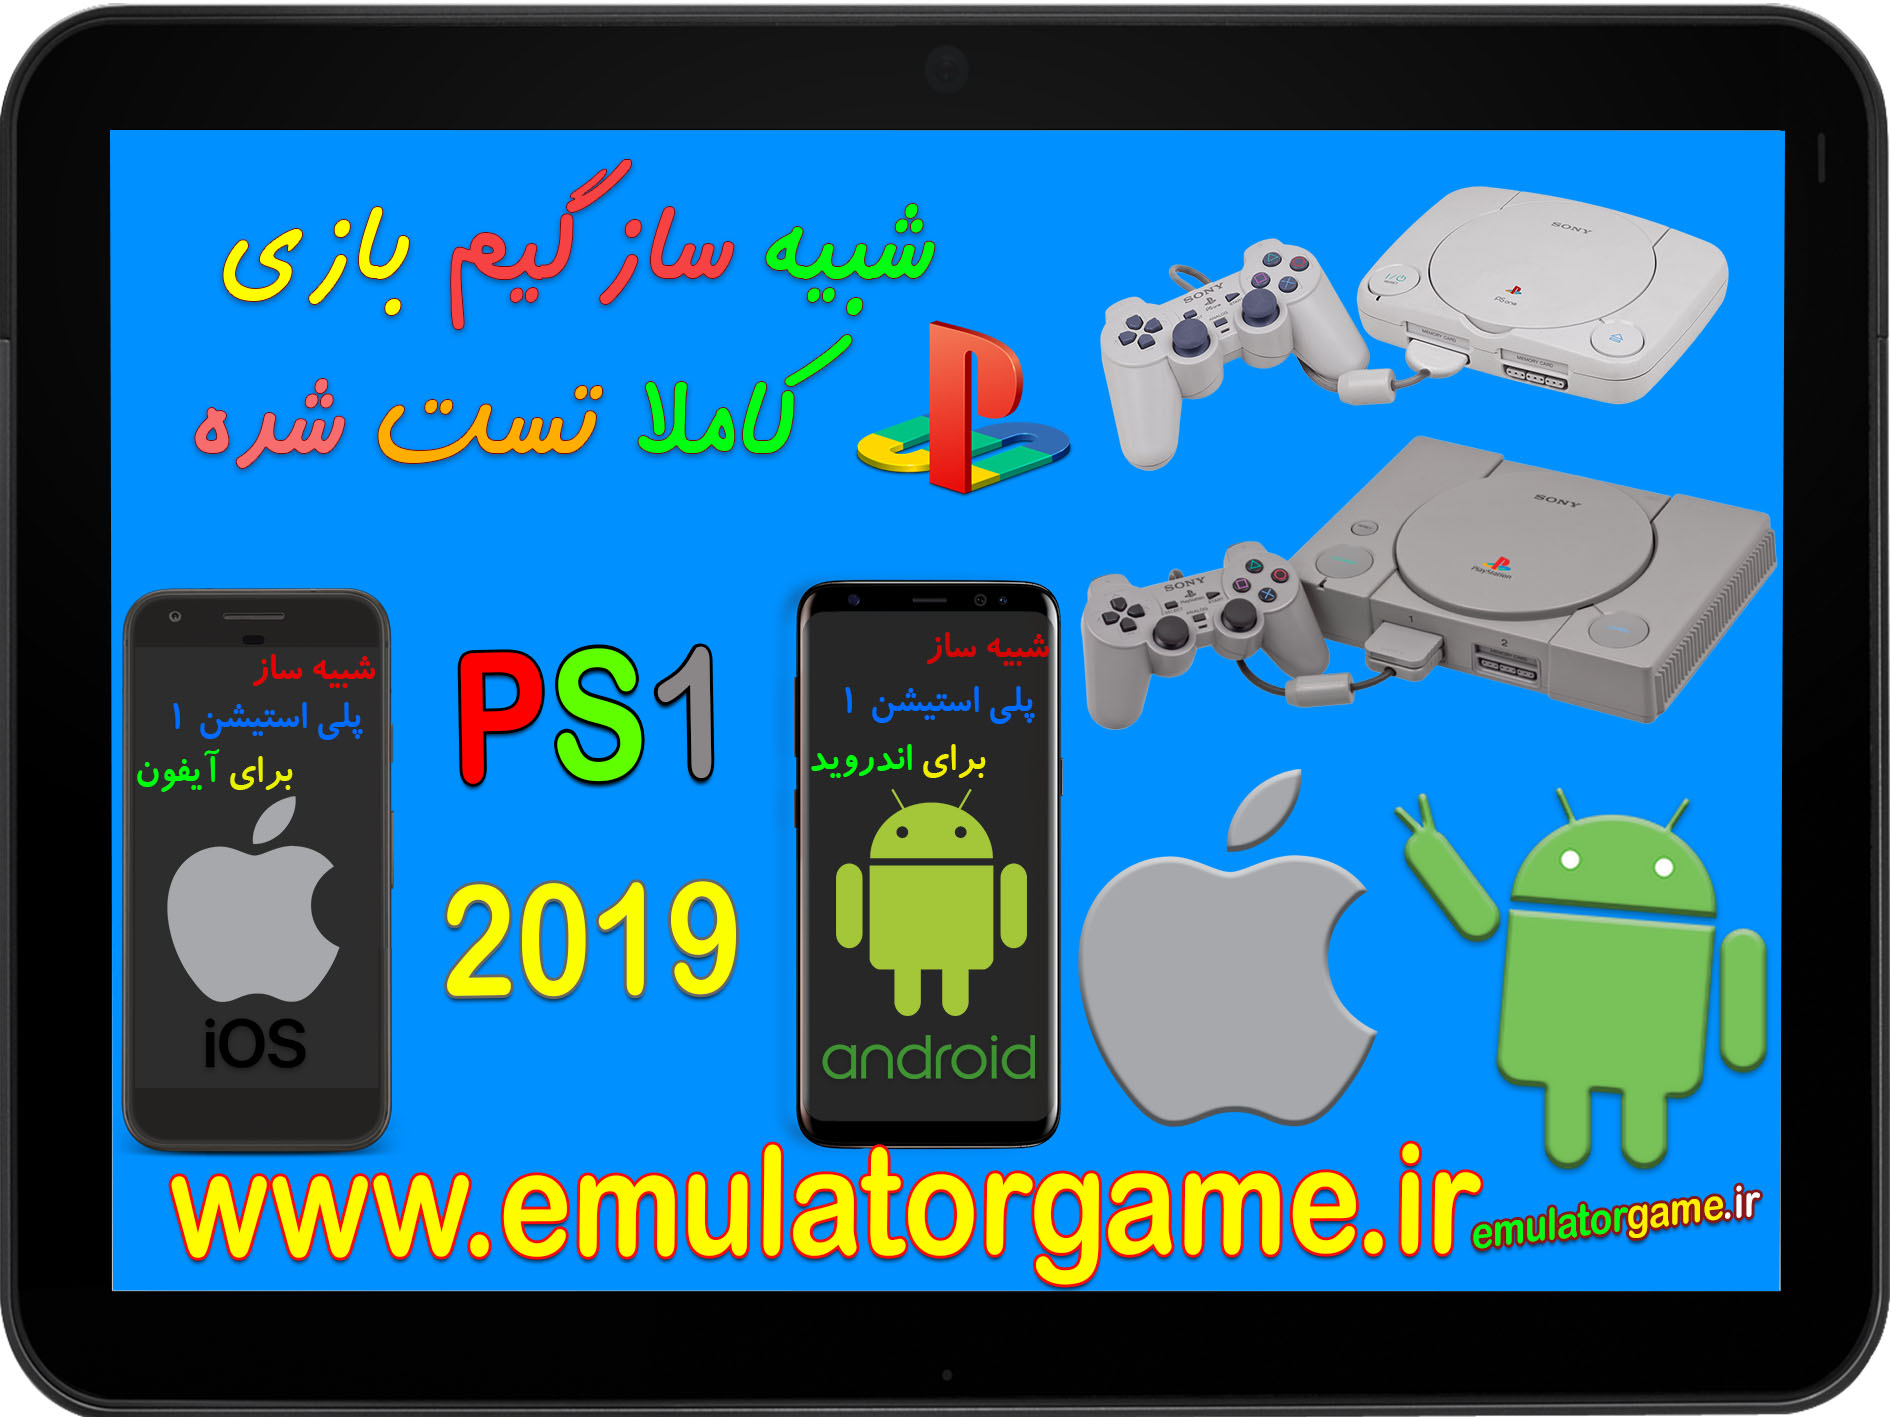 android ps1 2019